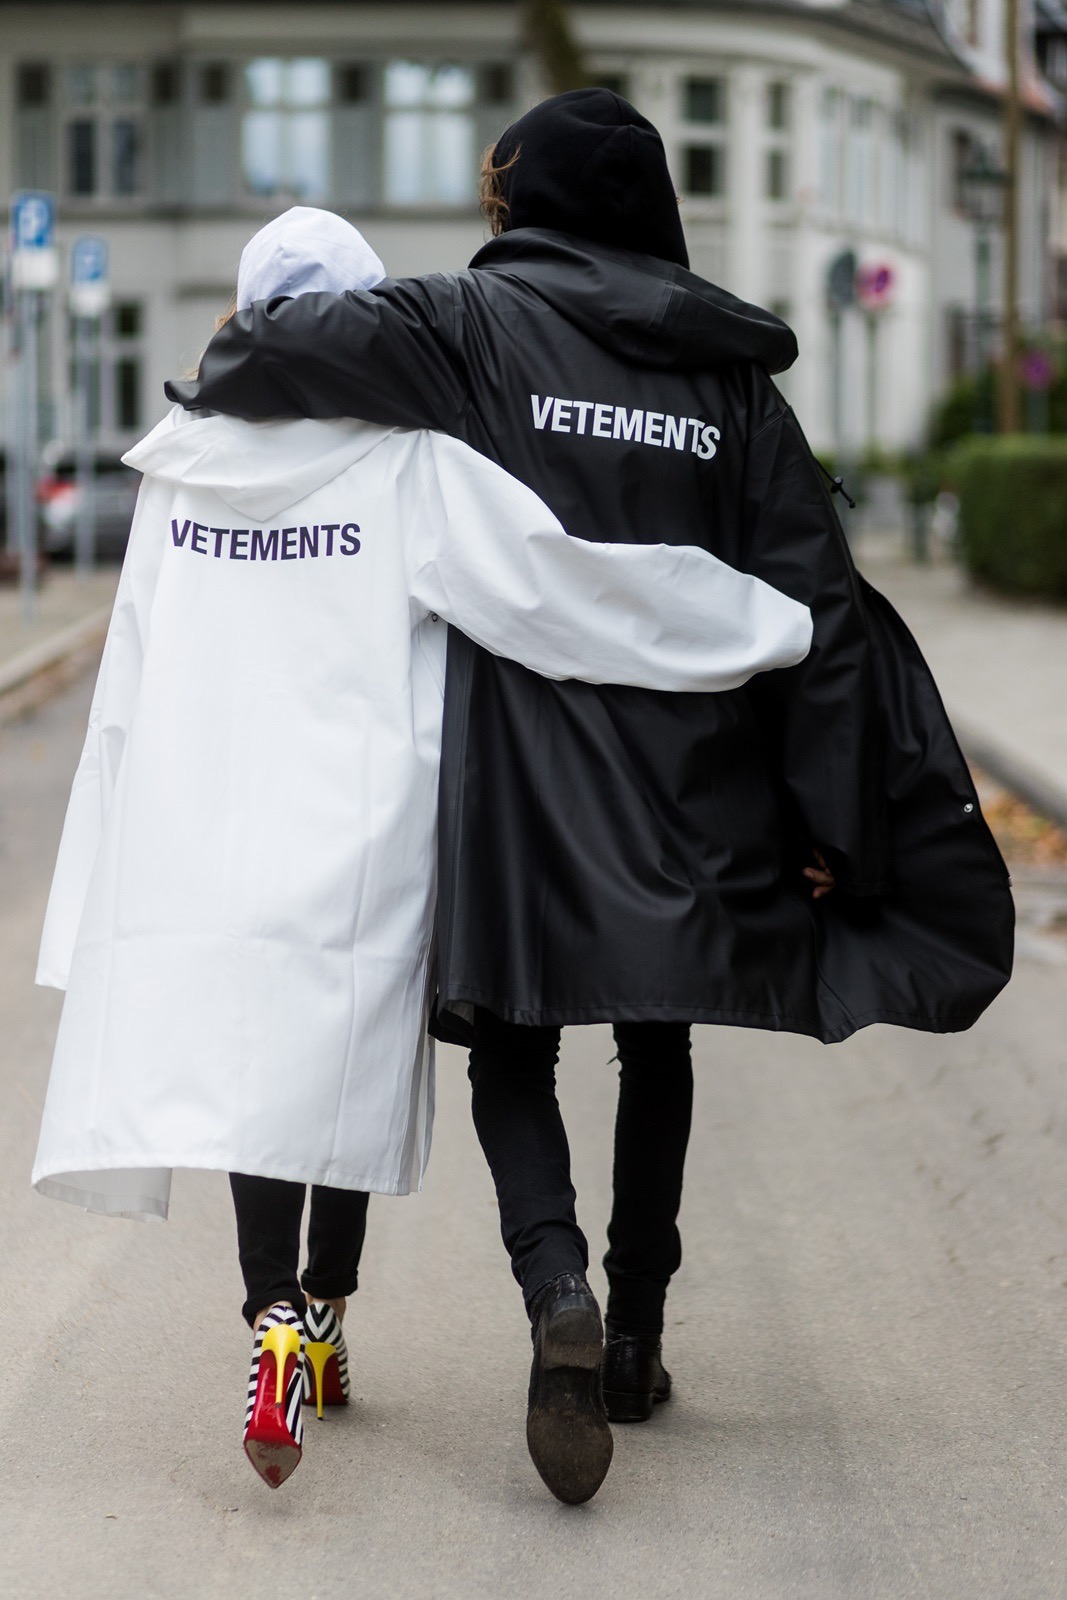 cd1621d0cfdb VETEMENTS RAINCOAT - Blog - Alexandra Lapp